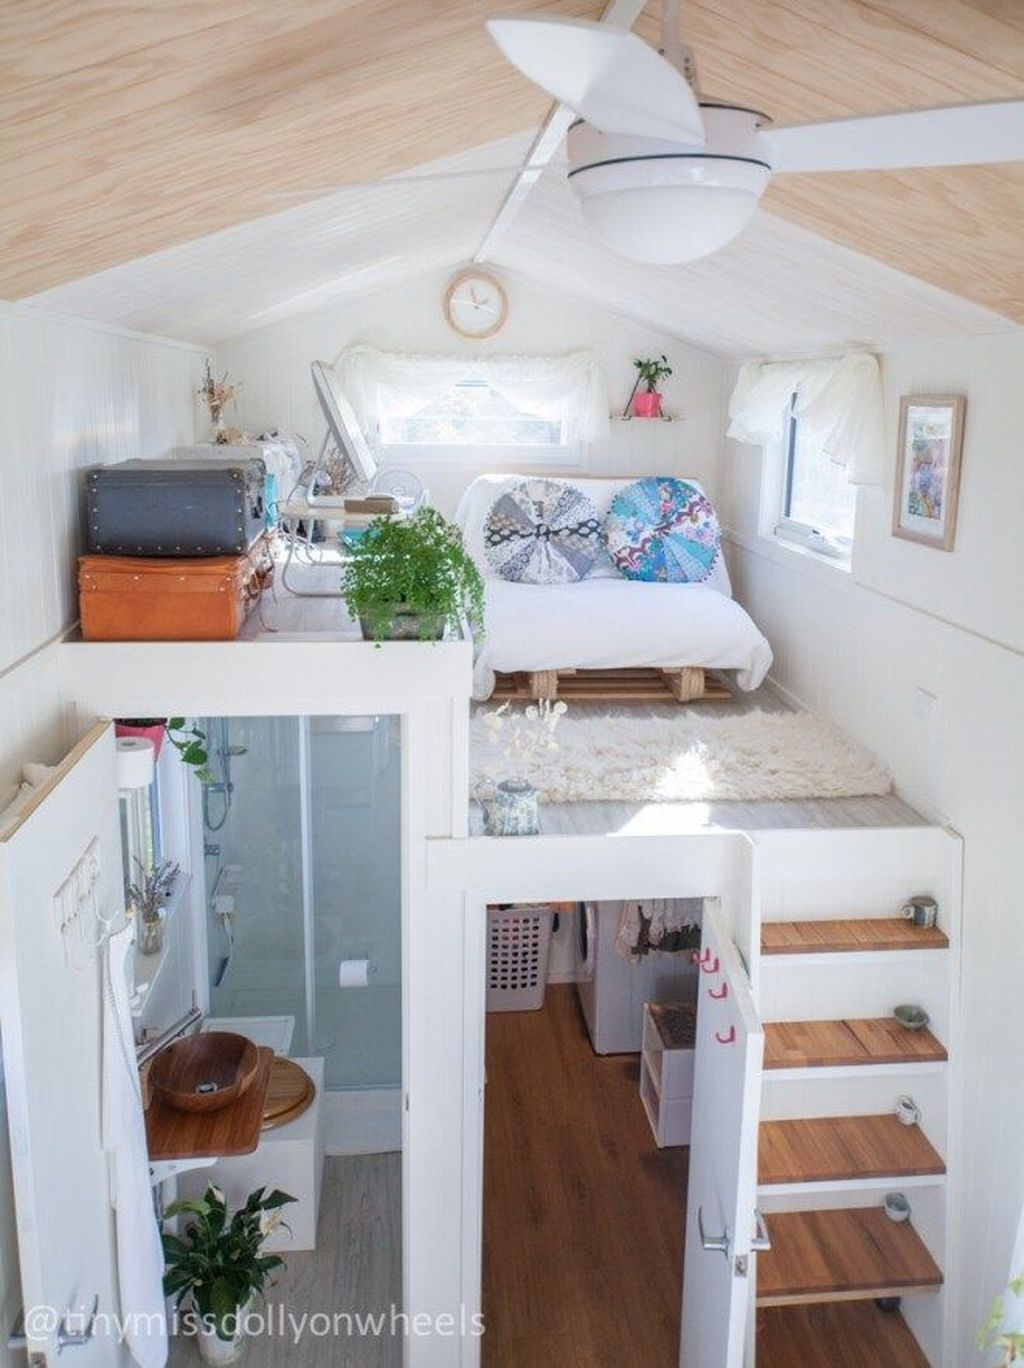 42 Awesome Tiny House Ideas Tiny House Loft Tiny House Living